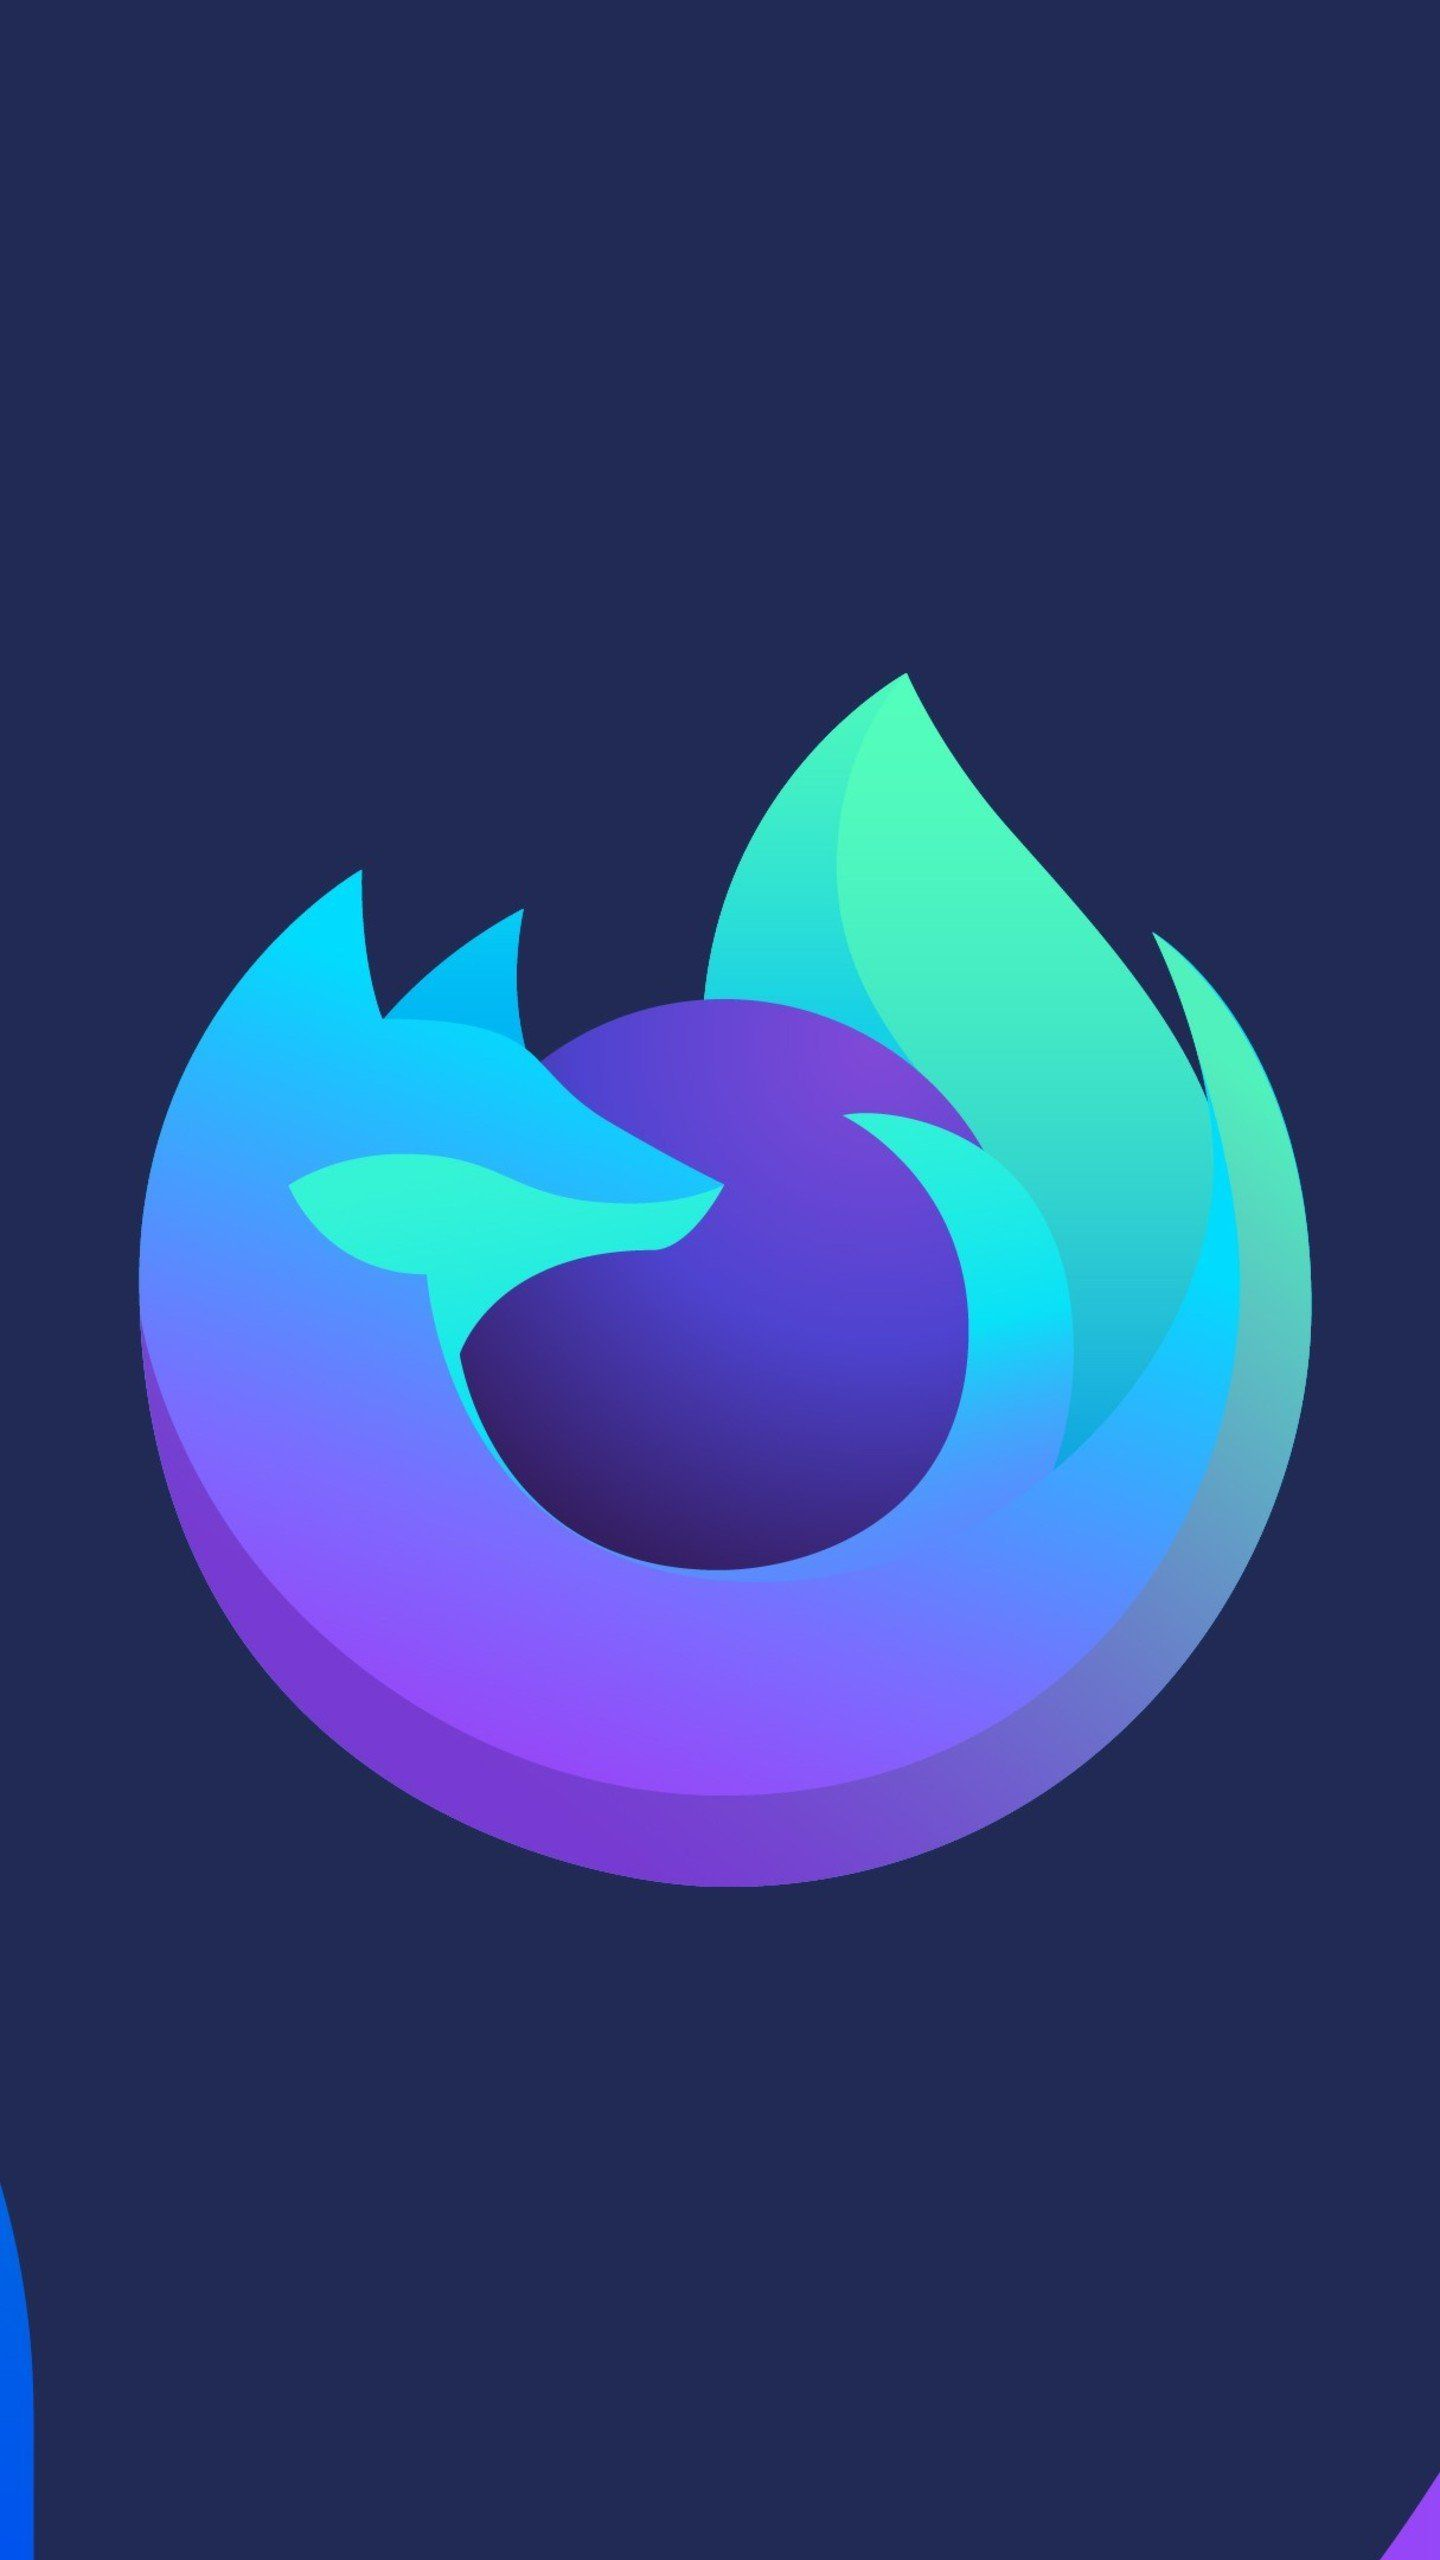 Firefox Nightly 4k Hd Computer Wallpapers Photos And Pictures Computer Wallpaper Hd Phone Wallpapers Abstract Wallpaper